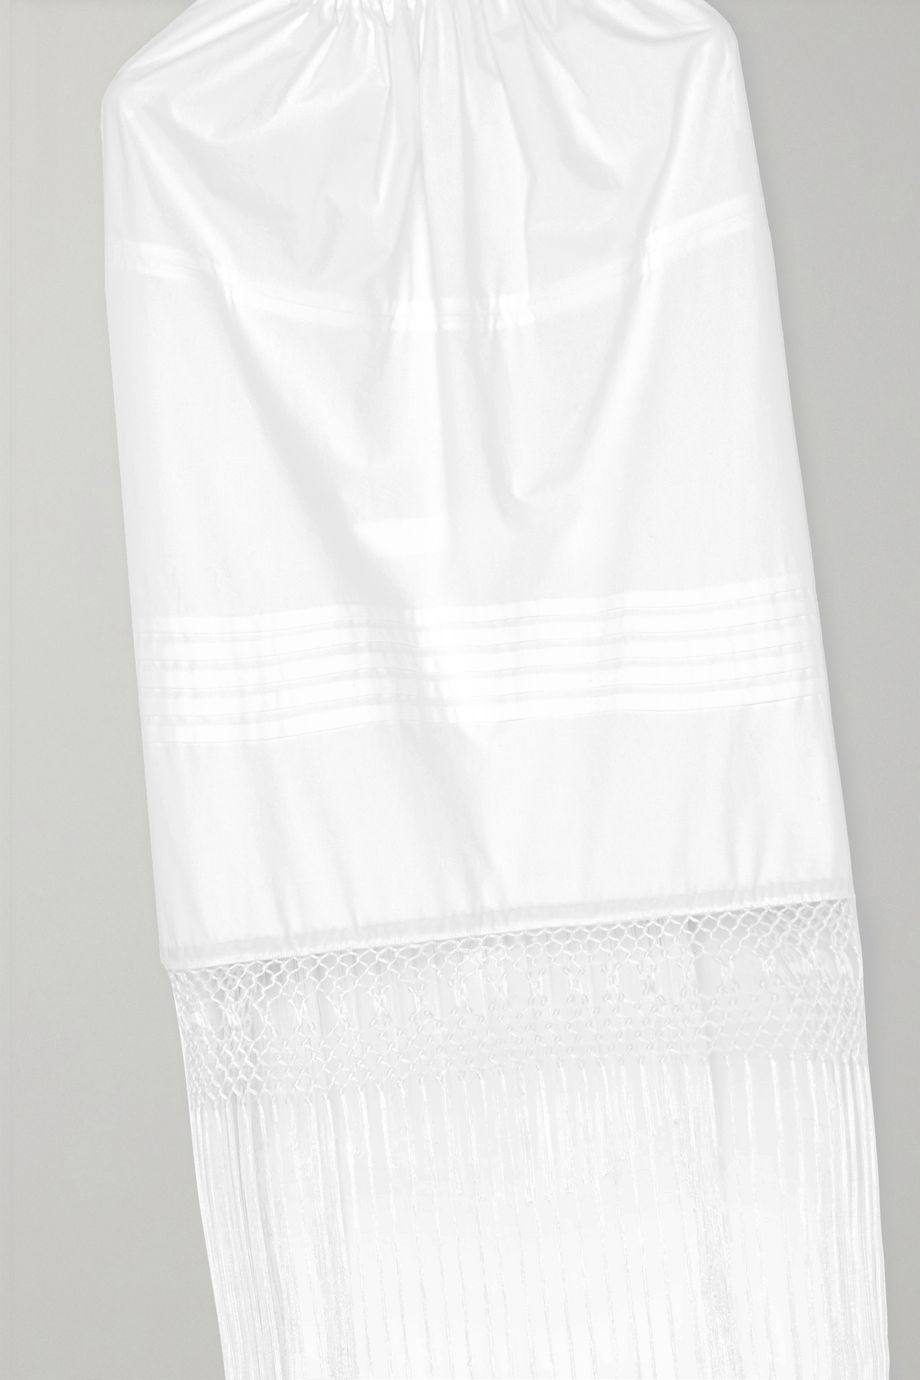 Loewe Open-back fringed cotton-poplin and macramé top